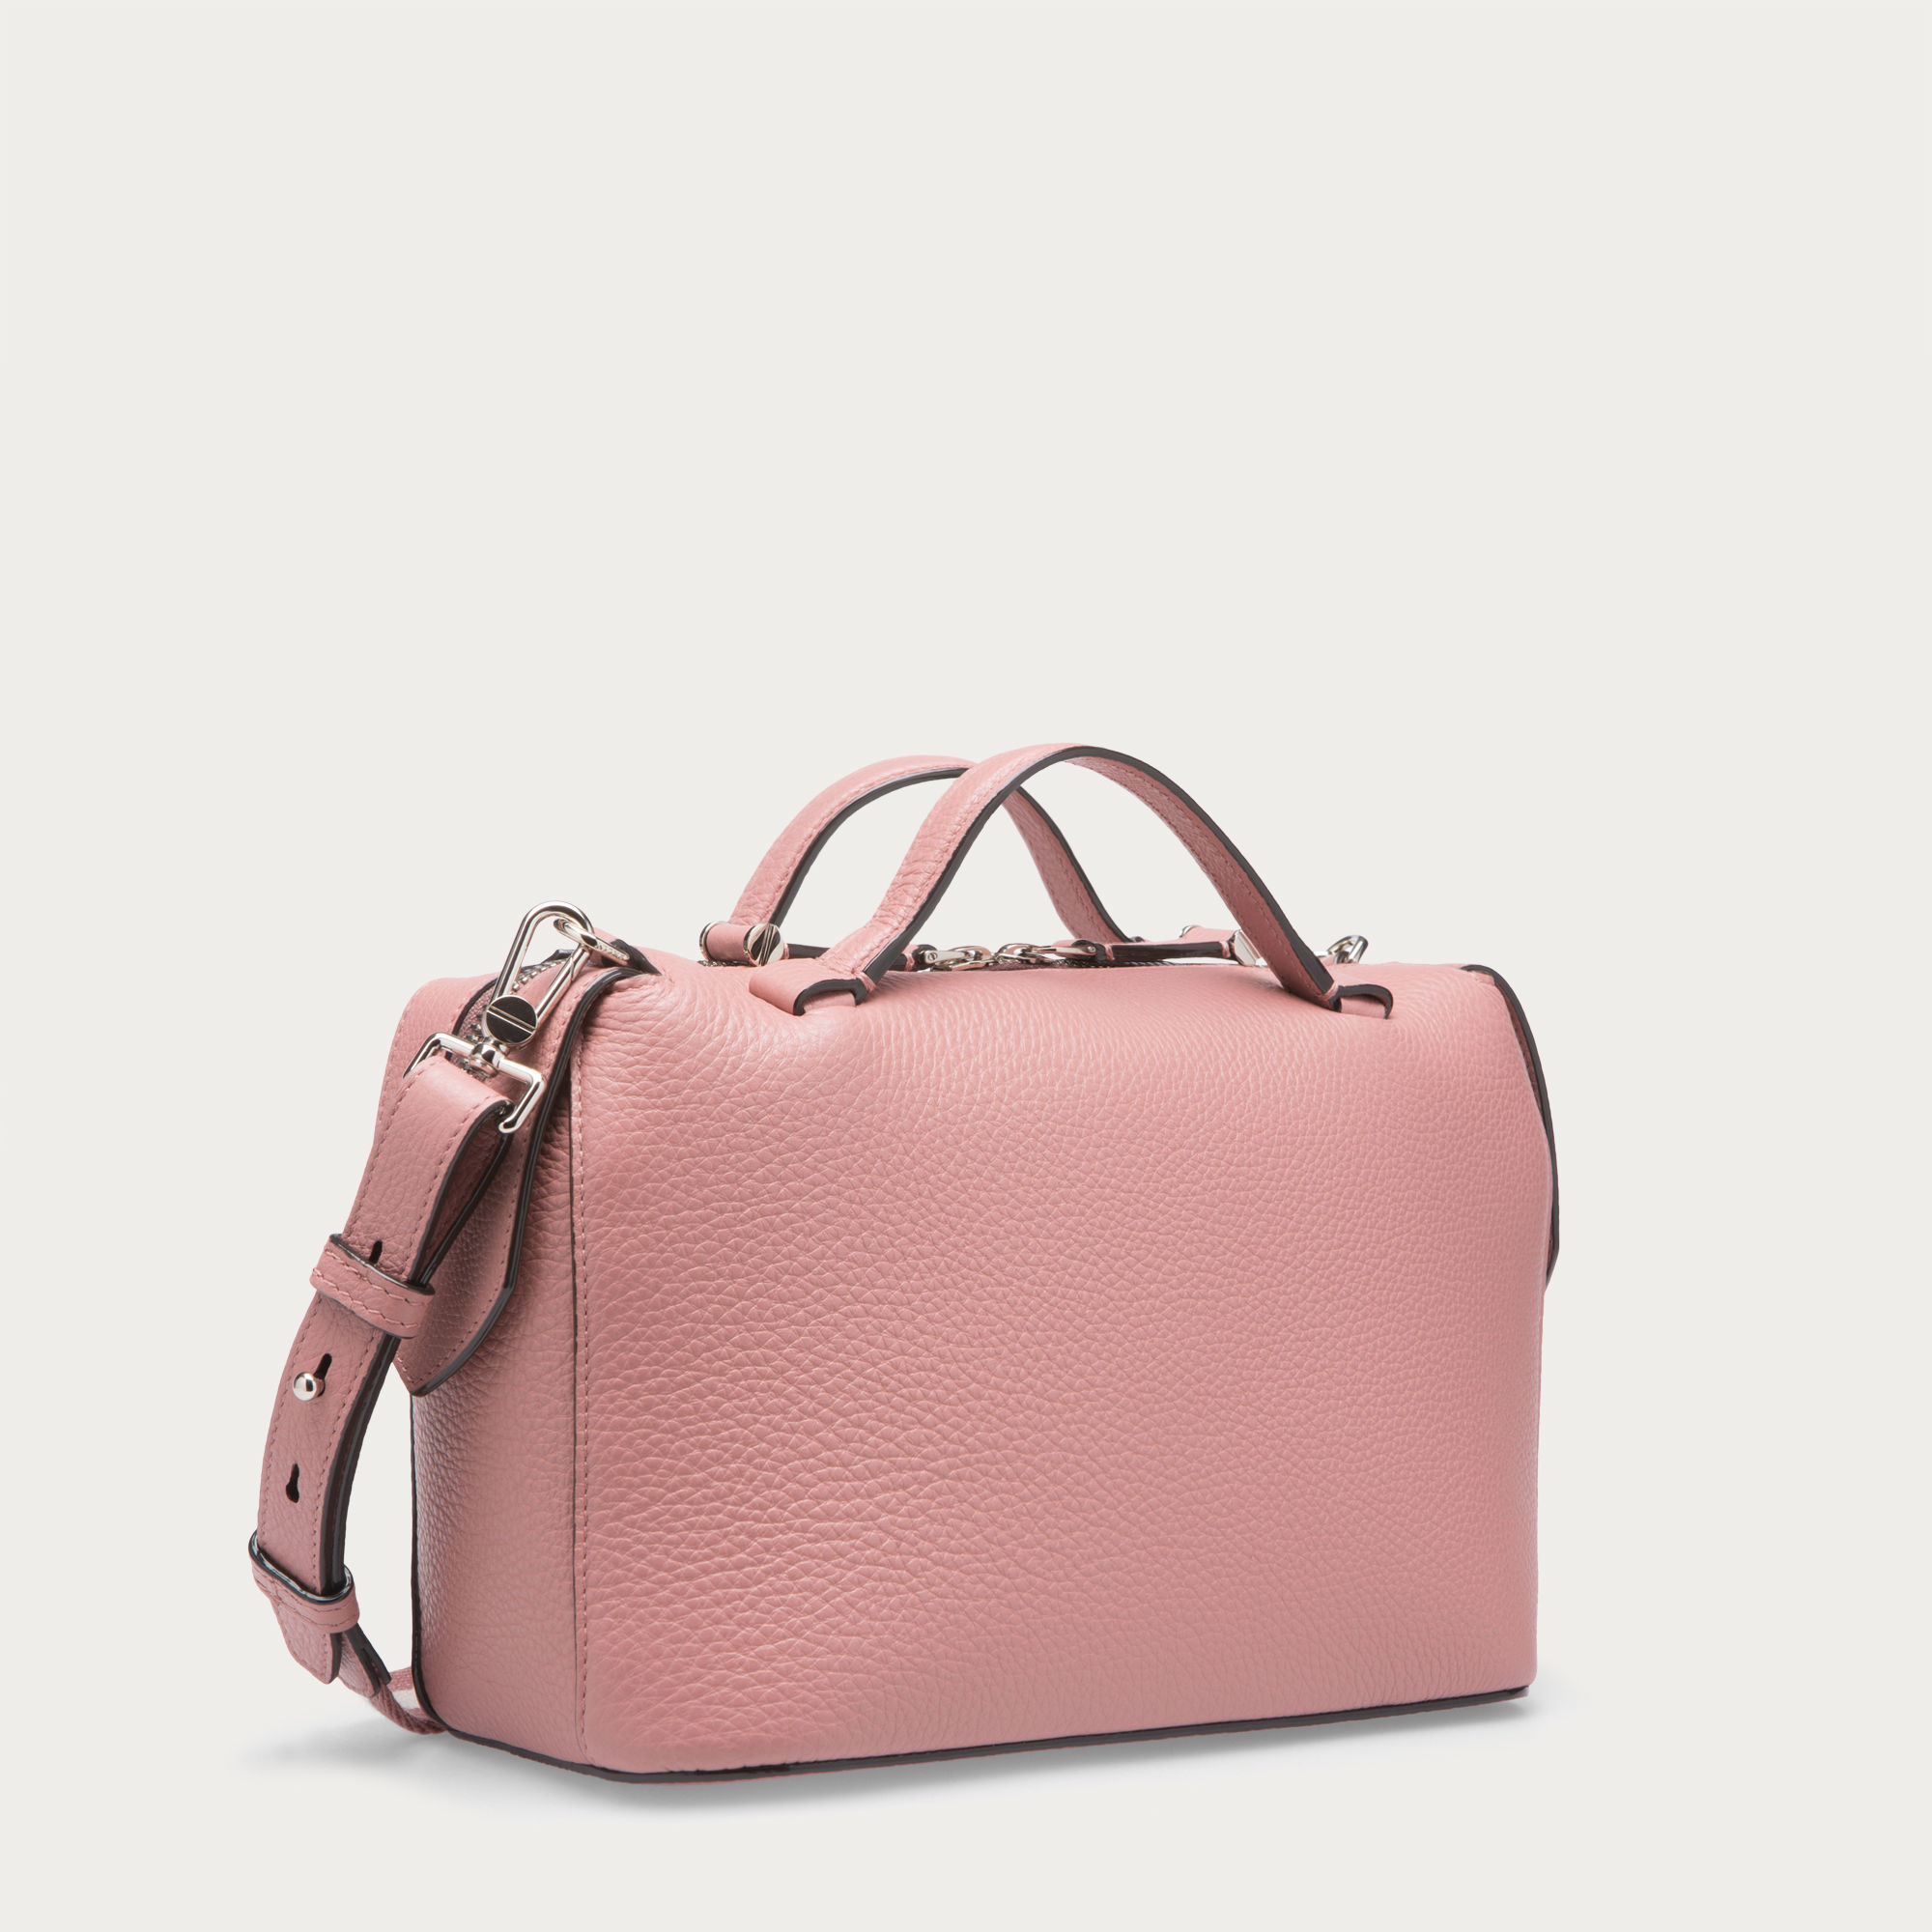 lyst bally kissen small women 39 s leather shoulder bag in rosehaze in pink for men. Black Bedroom Furniture Sets. Home Design Ideas